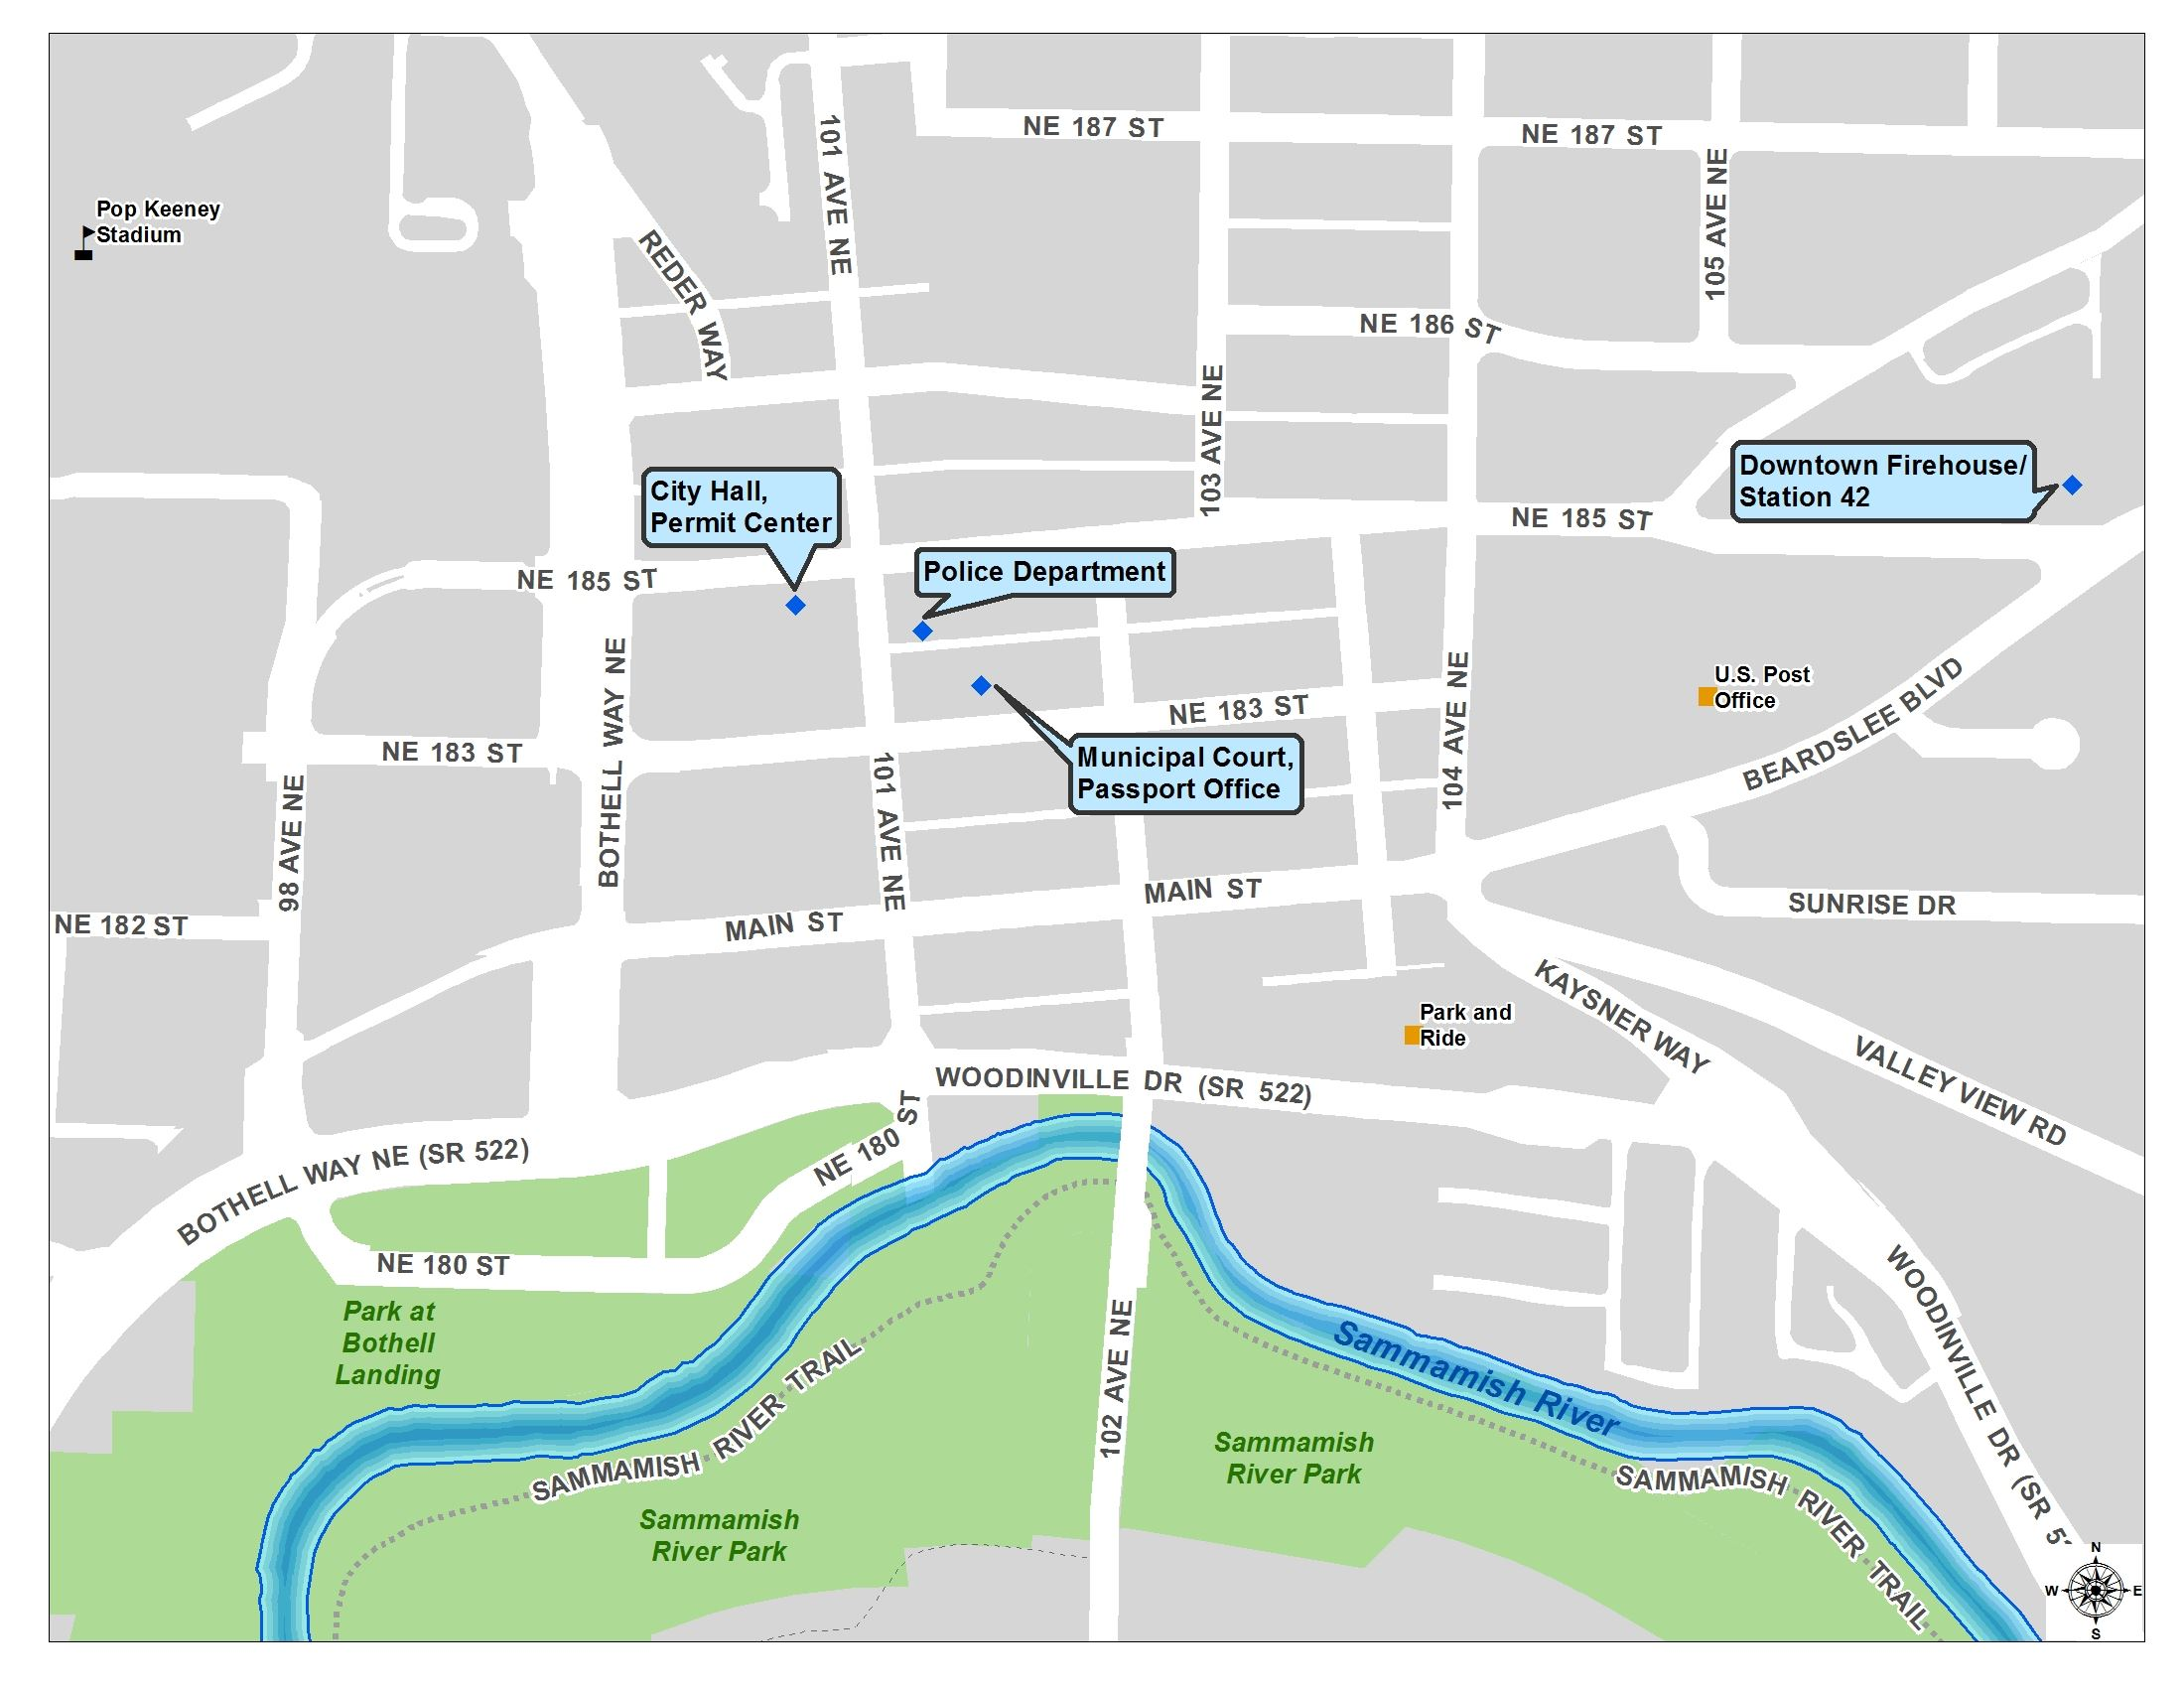 View a map showing the government buildings in downtown Bothell.